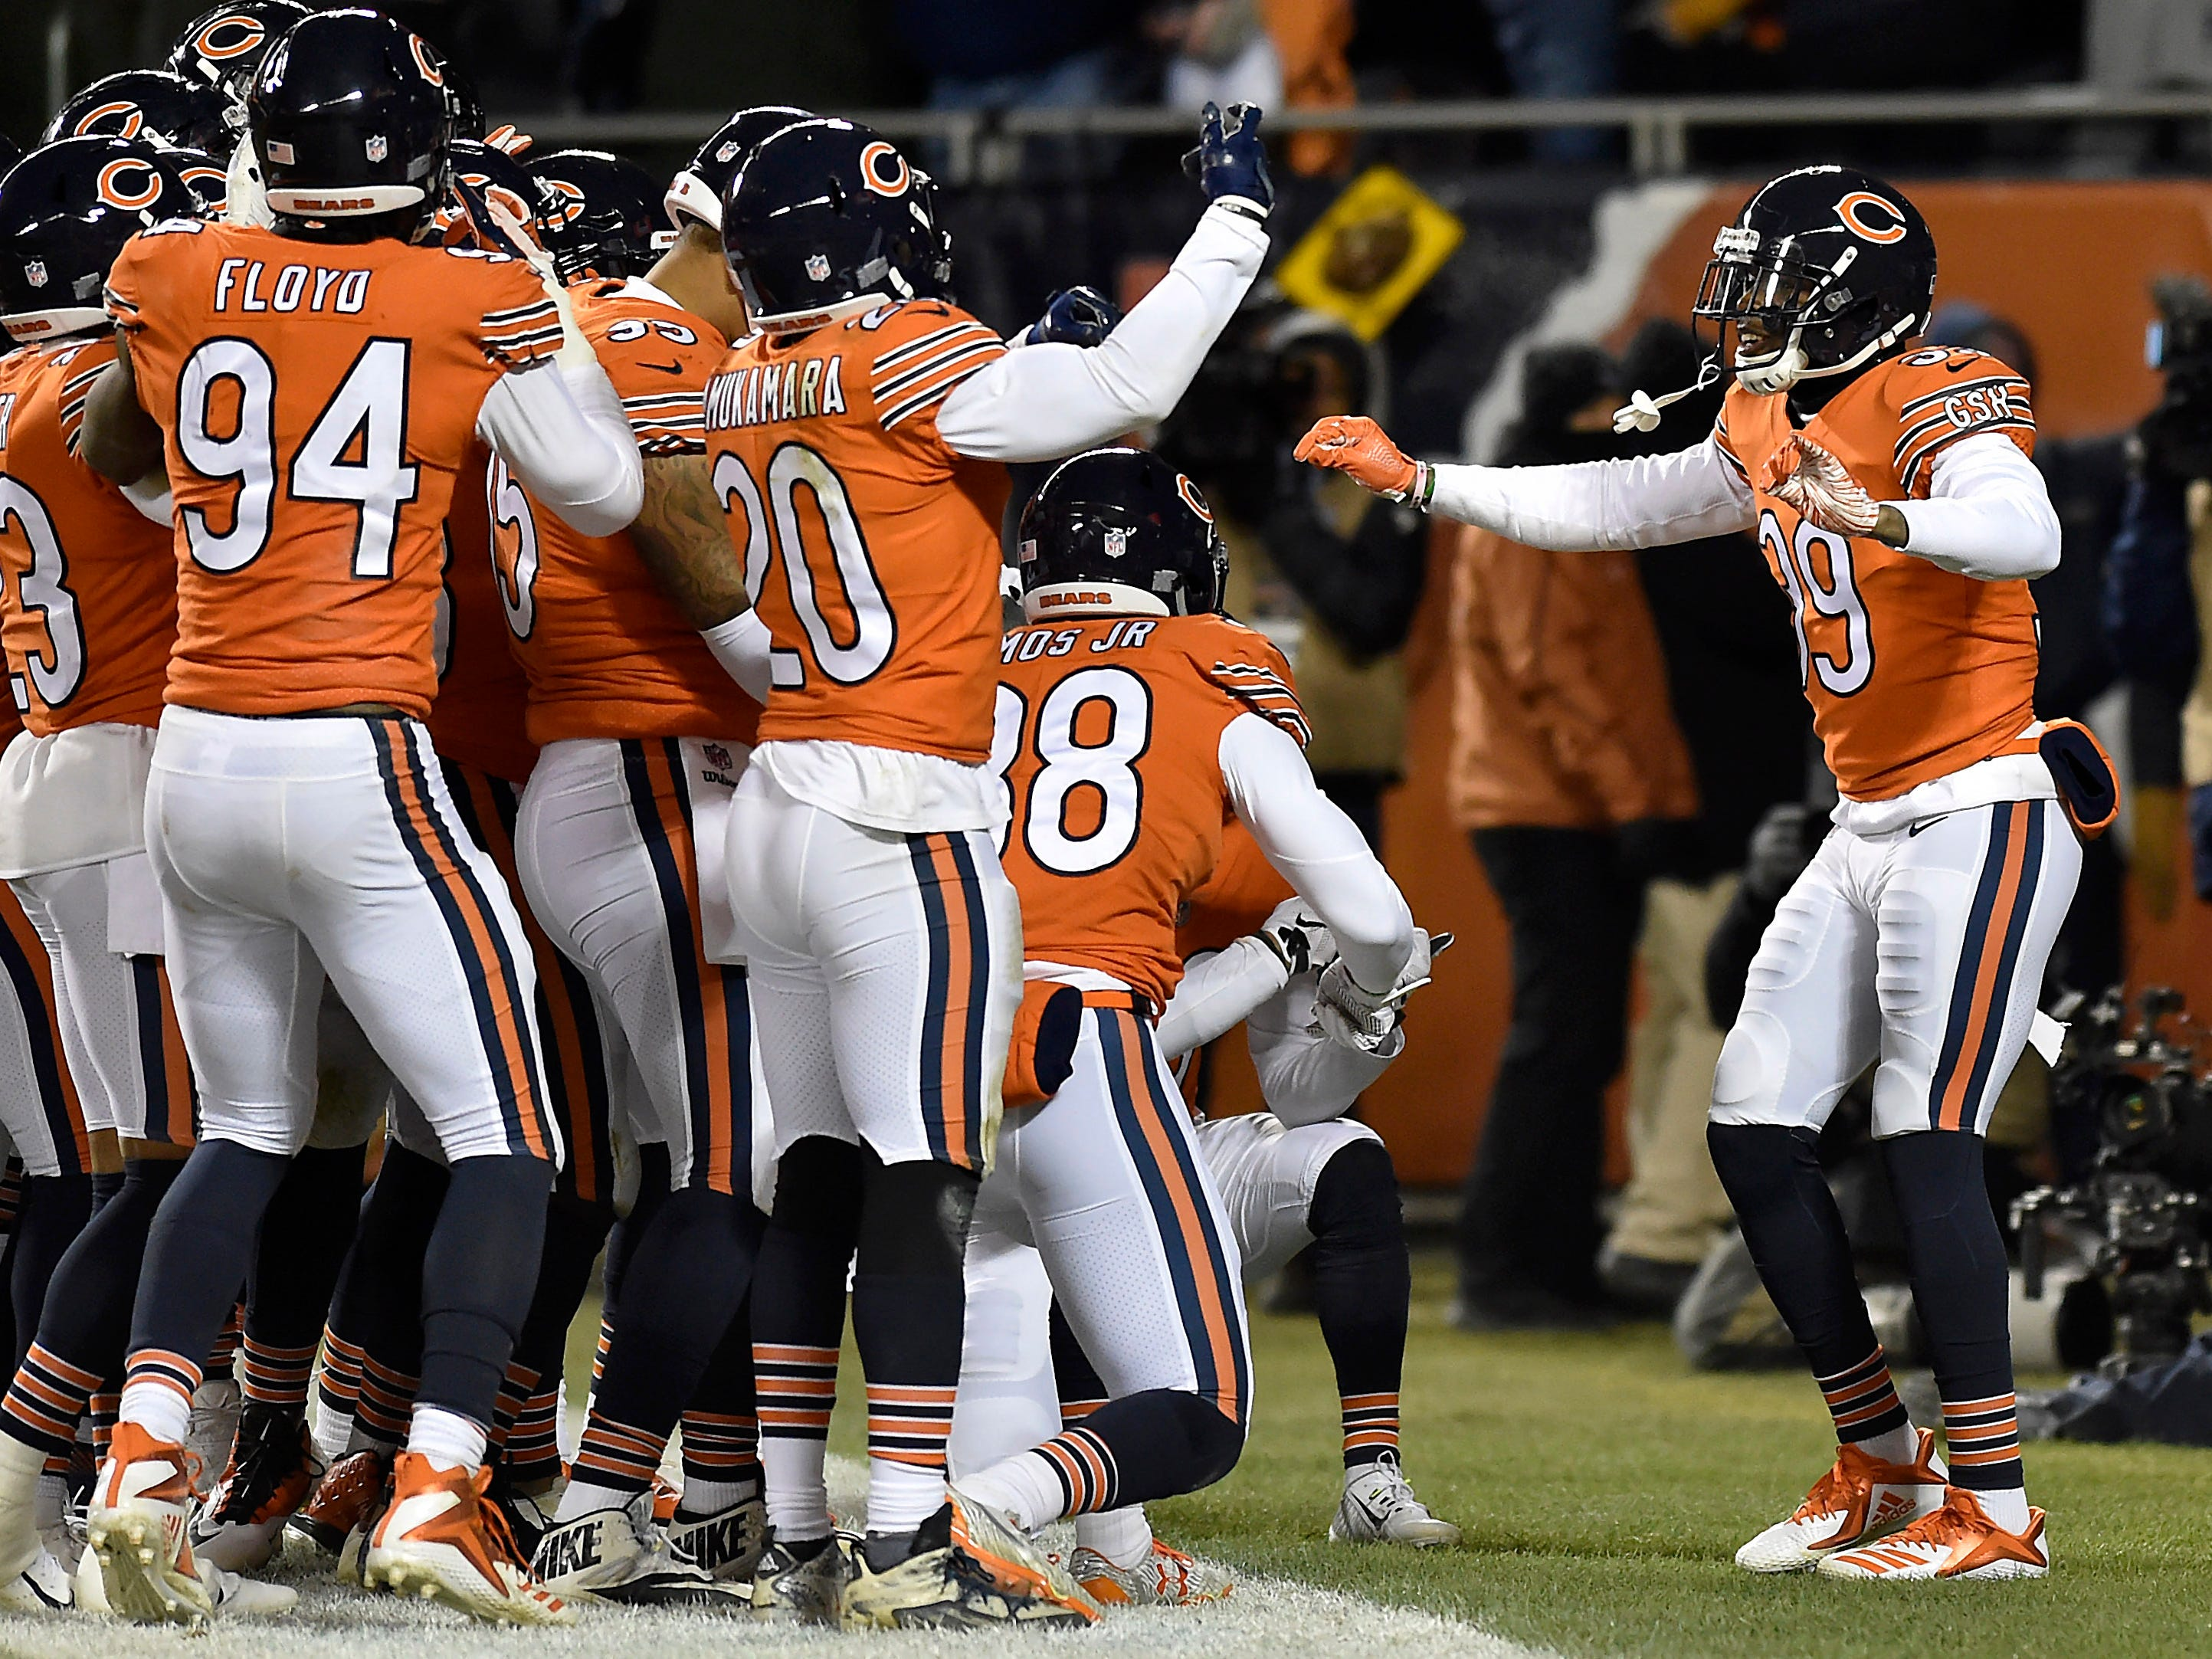 Chicago Bears free safety Eddie Jackson (39) celebrates in the end zone with teammates after scoring against the Minnesota Vikings at Soldier Field.